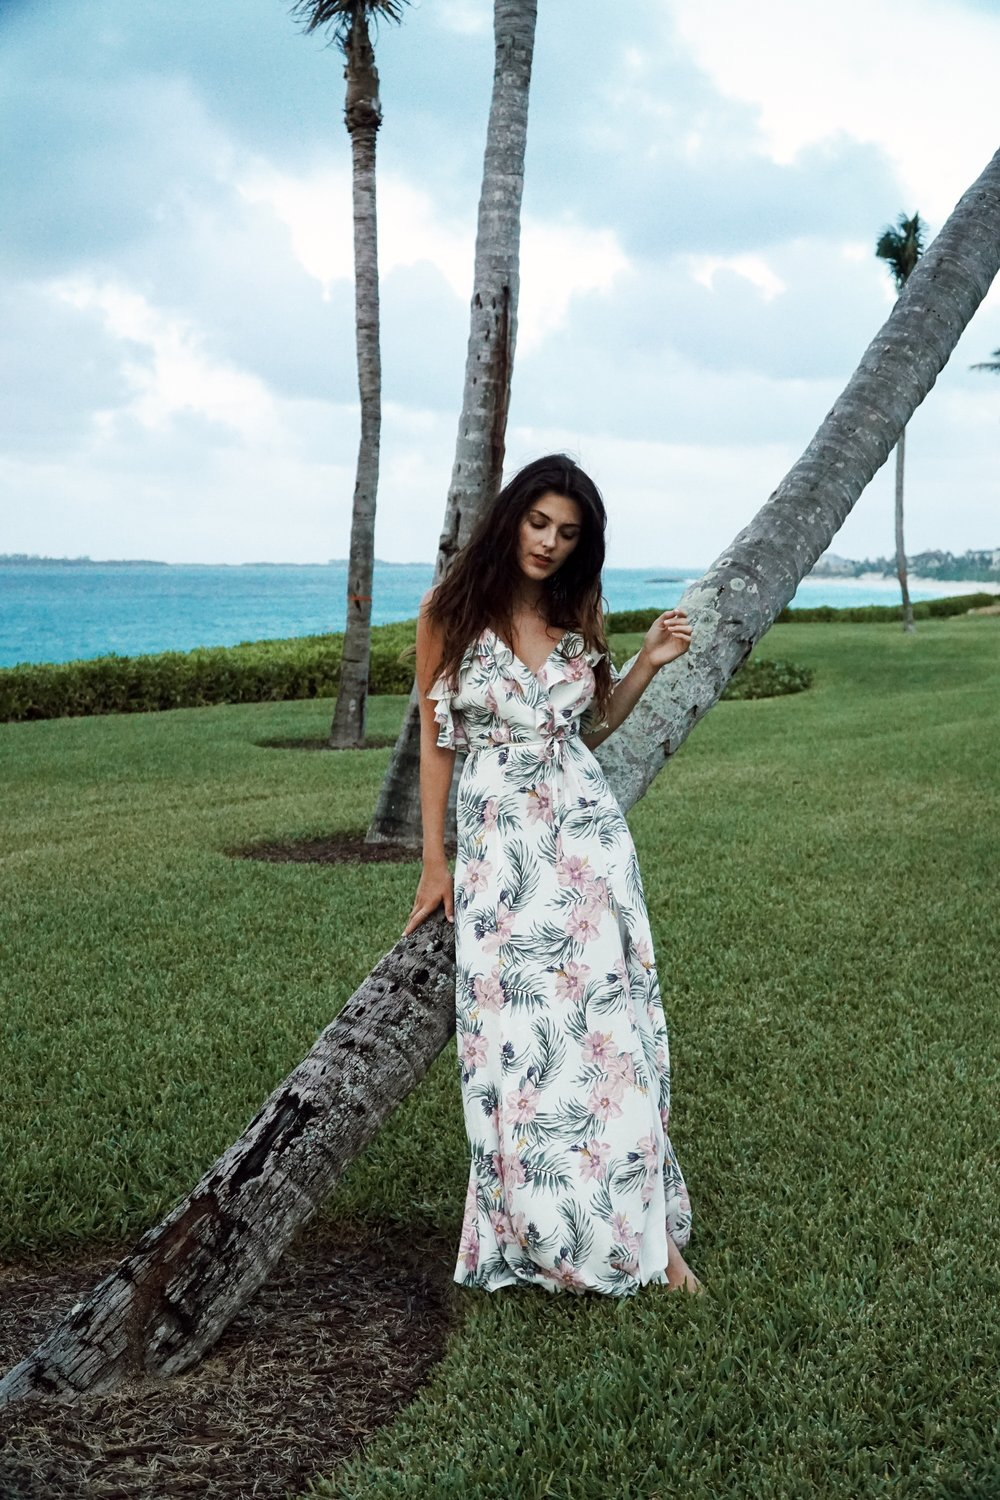 Julia Friedman wearing the Privacy Please Karen Dress from Revolve Clothing at the One&Only Ocean Club in Bahamas